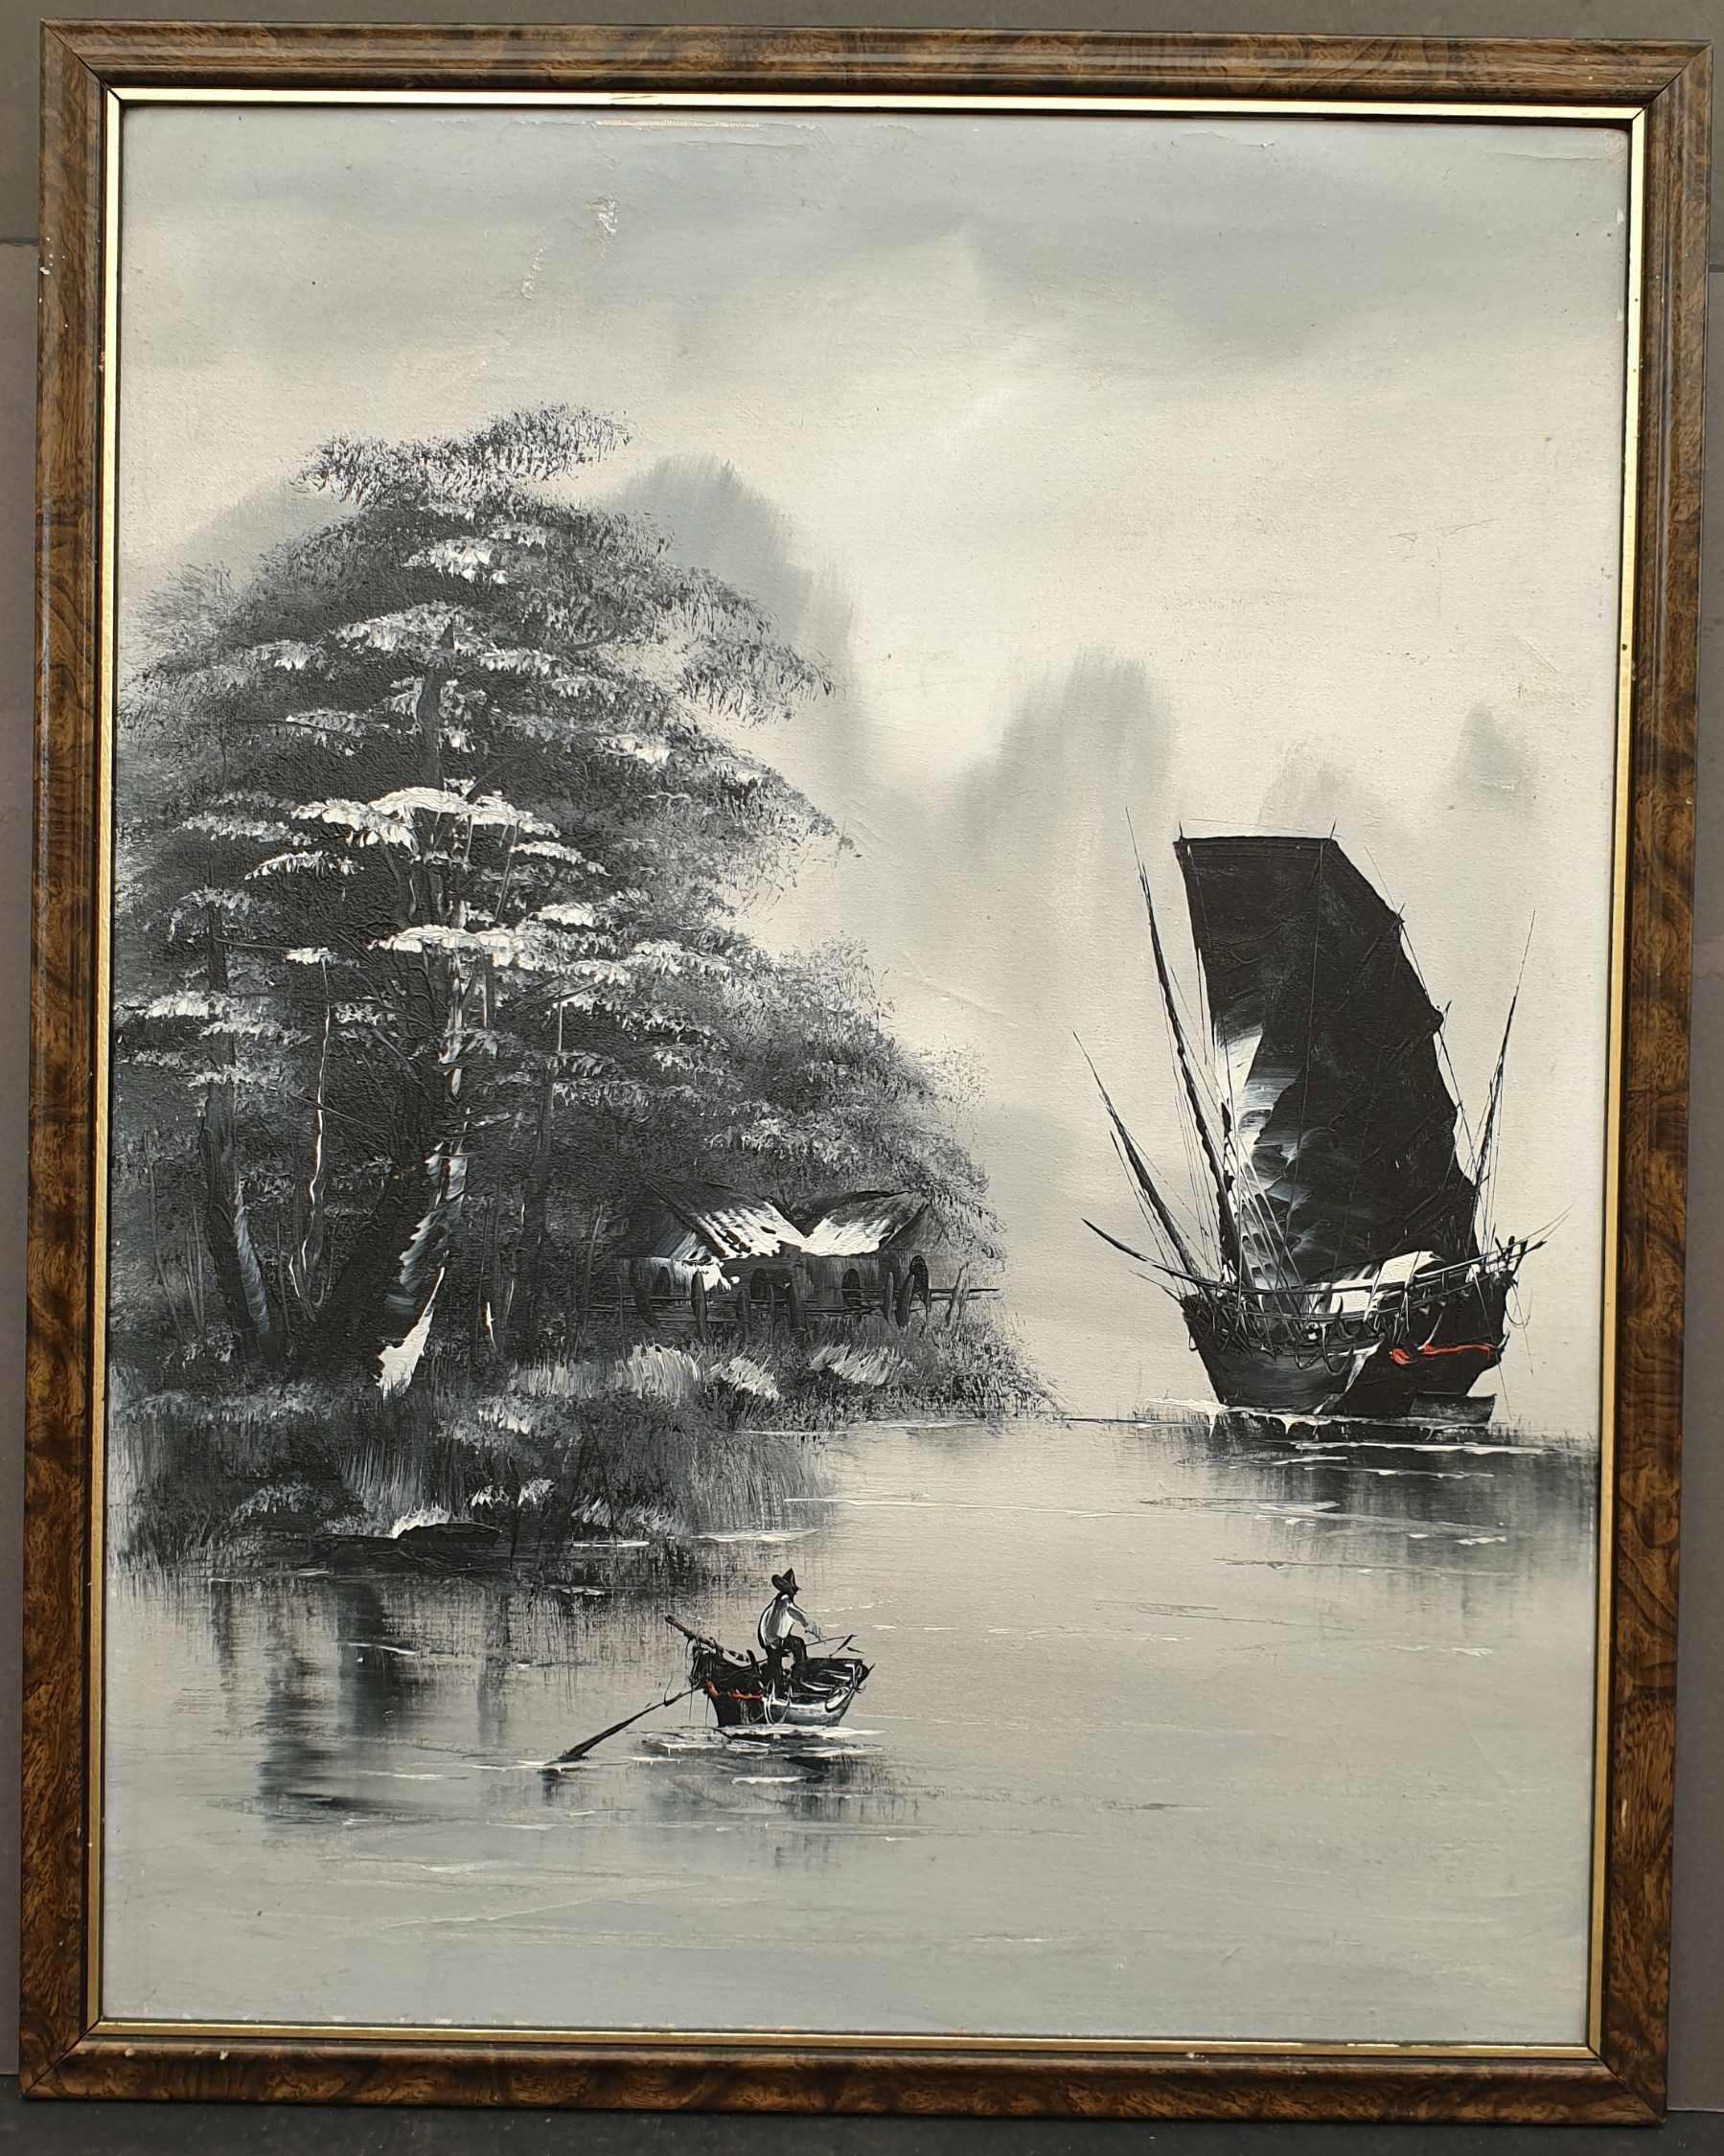 Vintage Framed Art Oil on Canvas Naval Scene Chinese Junk